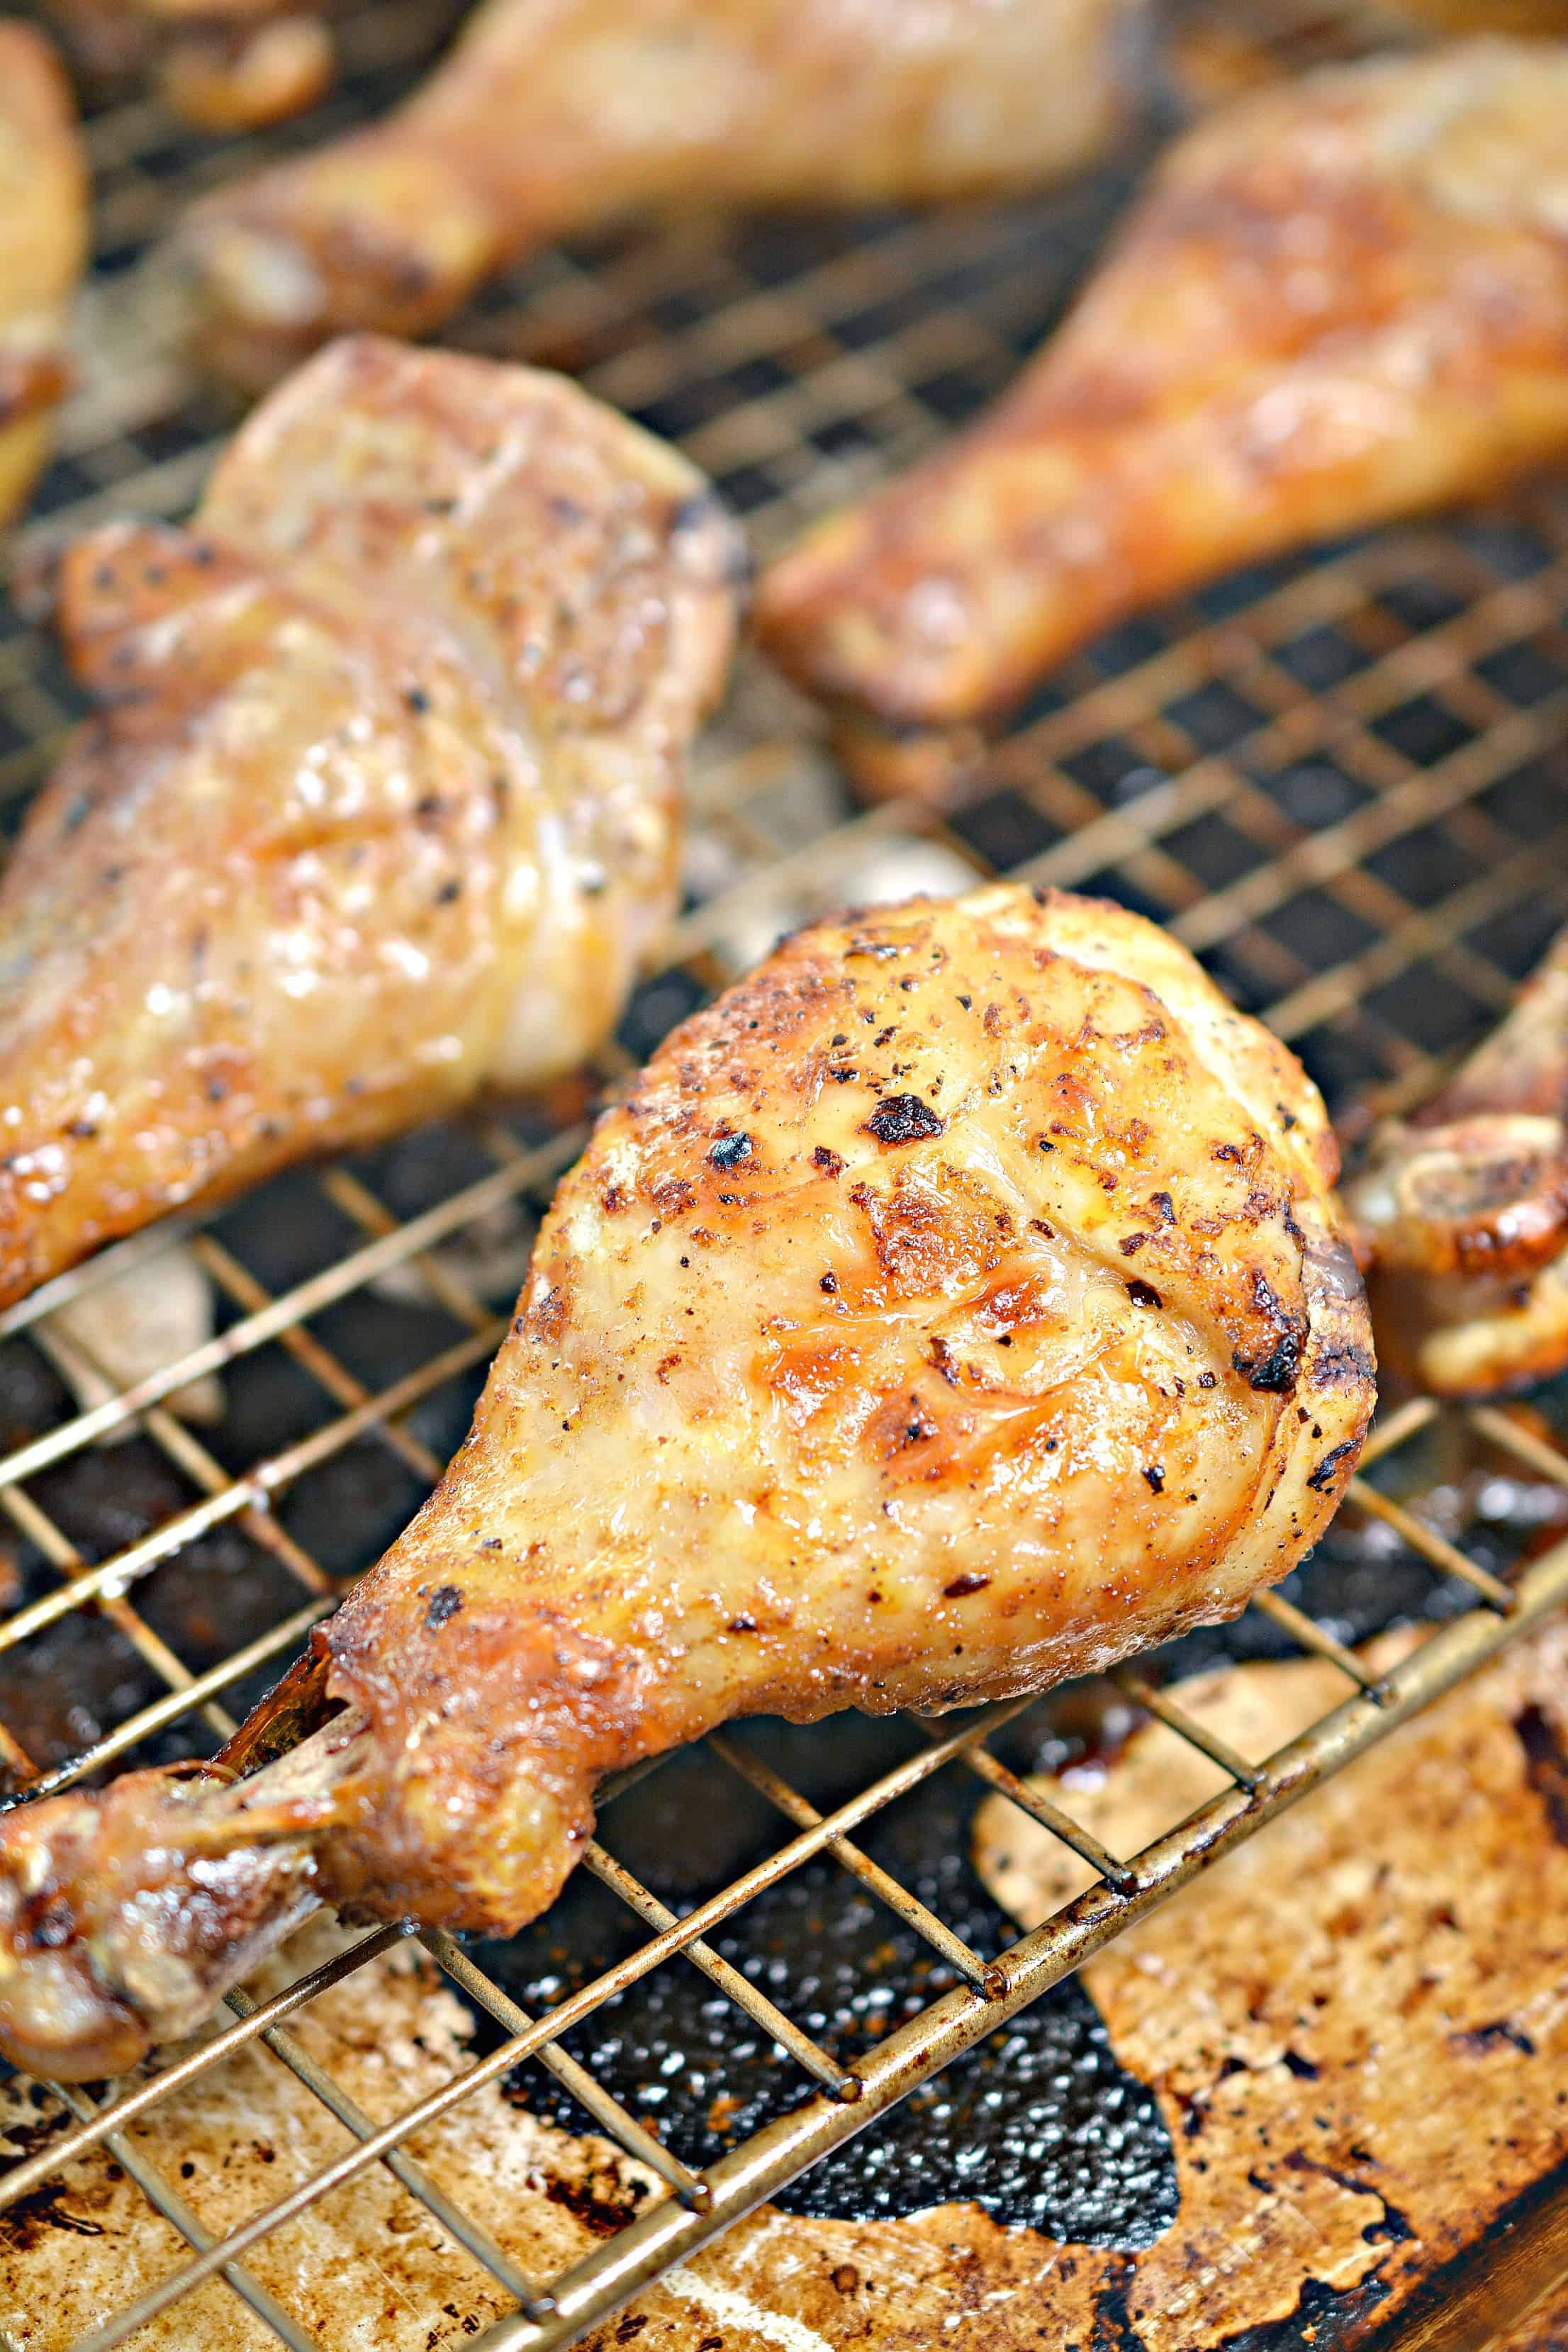 Brown Sugar Glazed Baked Chicken Drumsticks on a wire rack